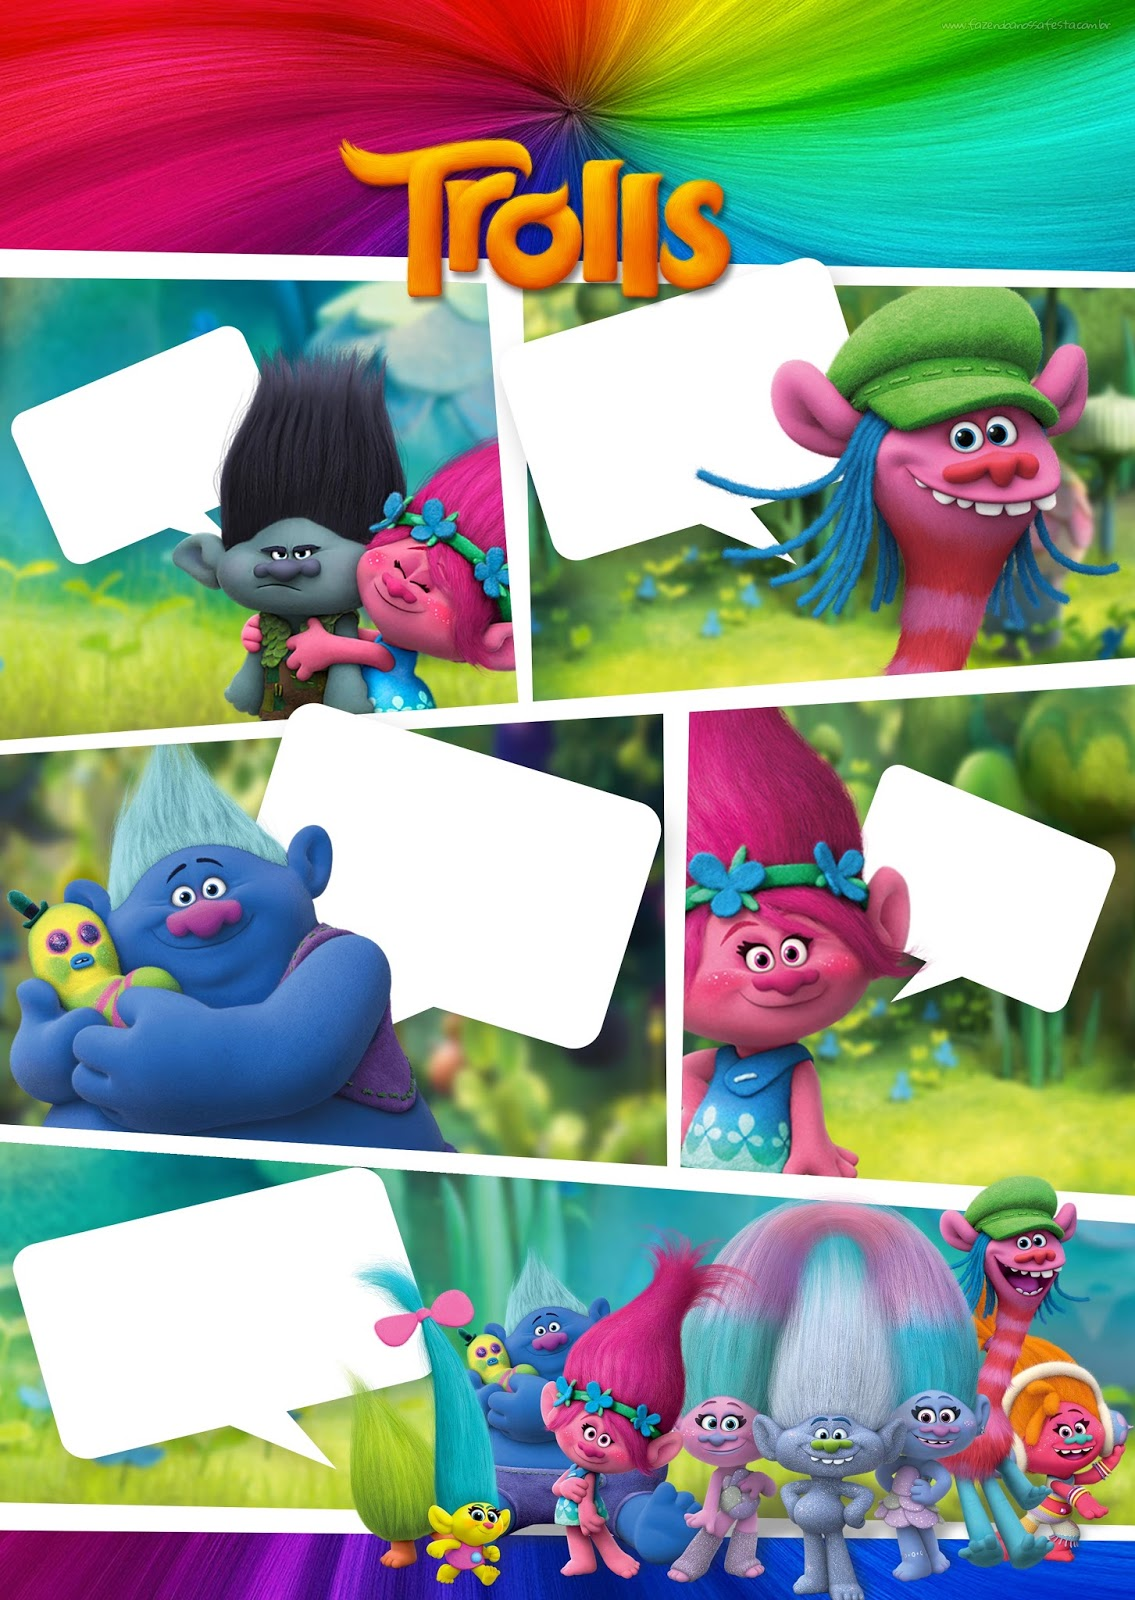 picture relating to Trolls Printable Invitations named Trolls: Absolutely free Printable Invites. - Oh My Fiesta! within english